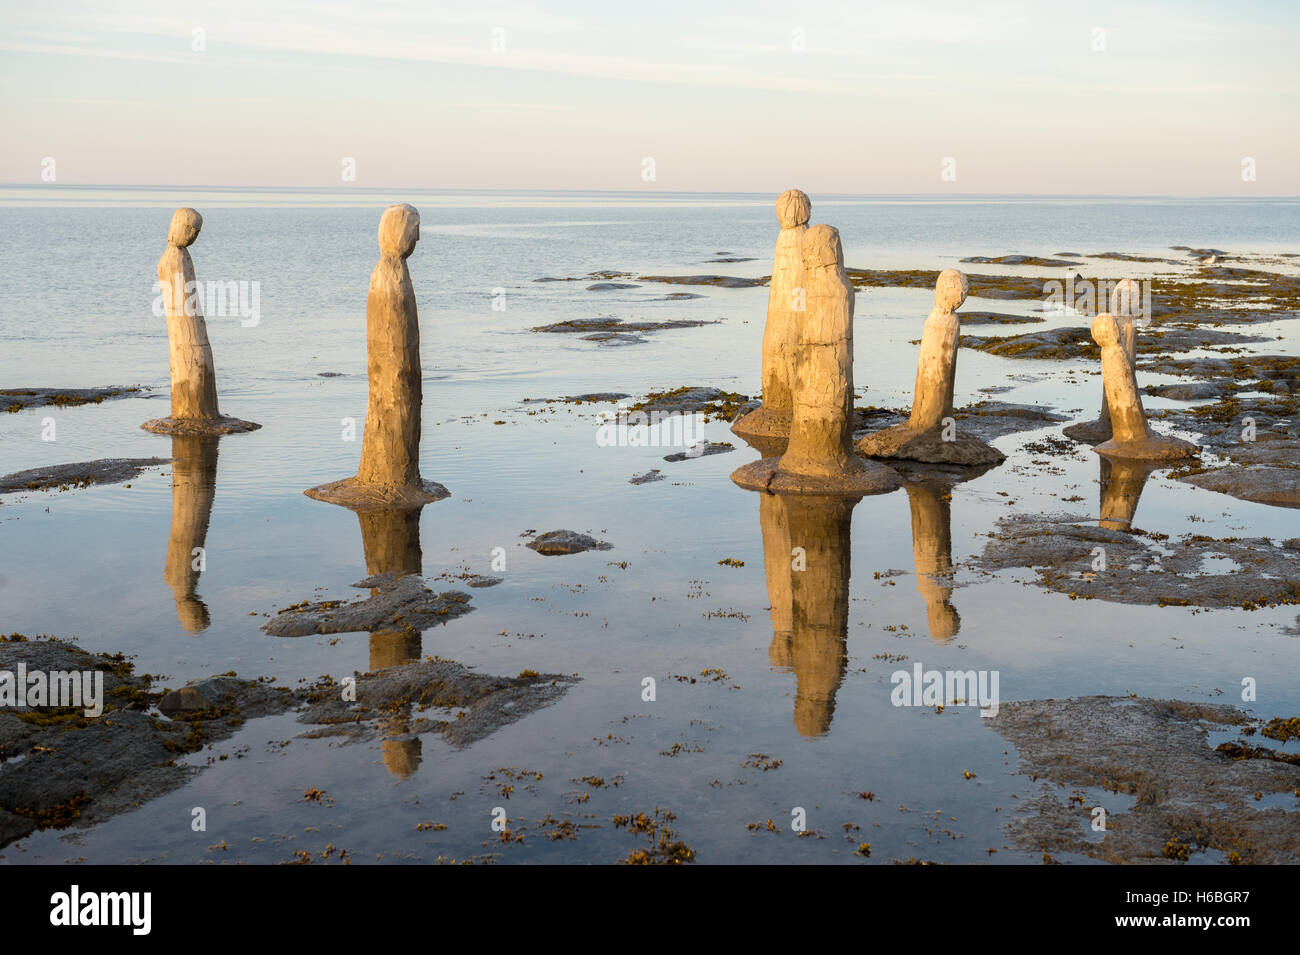 The Great Gathering by Marcel Gagnon in Sainte-Flavie, Quebec, Canada - Stock Image